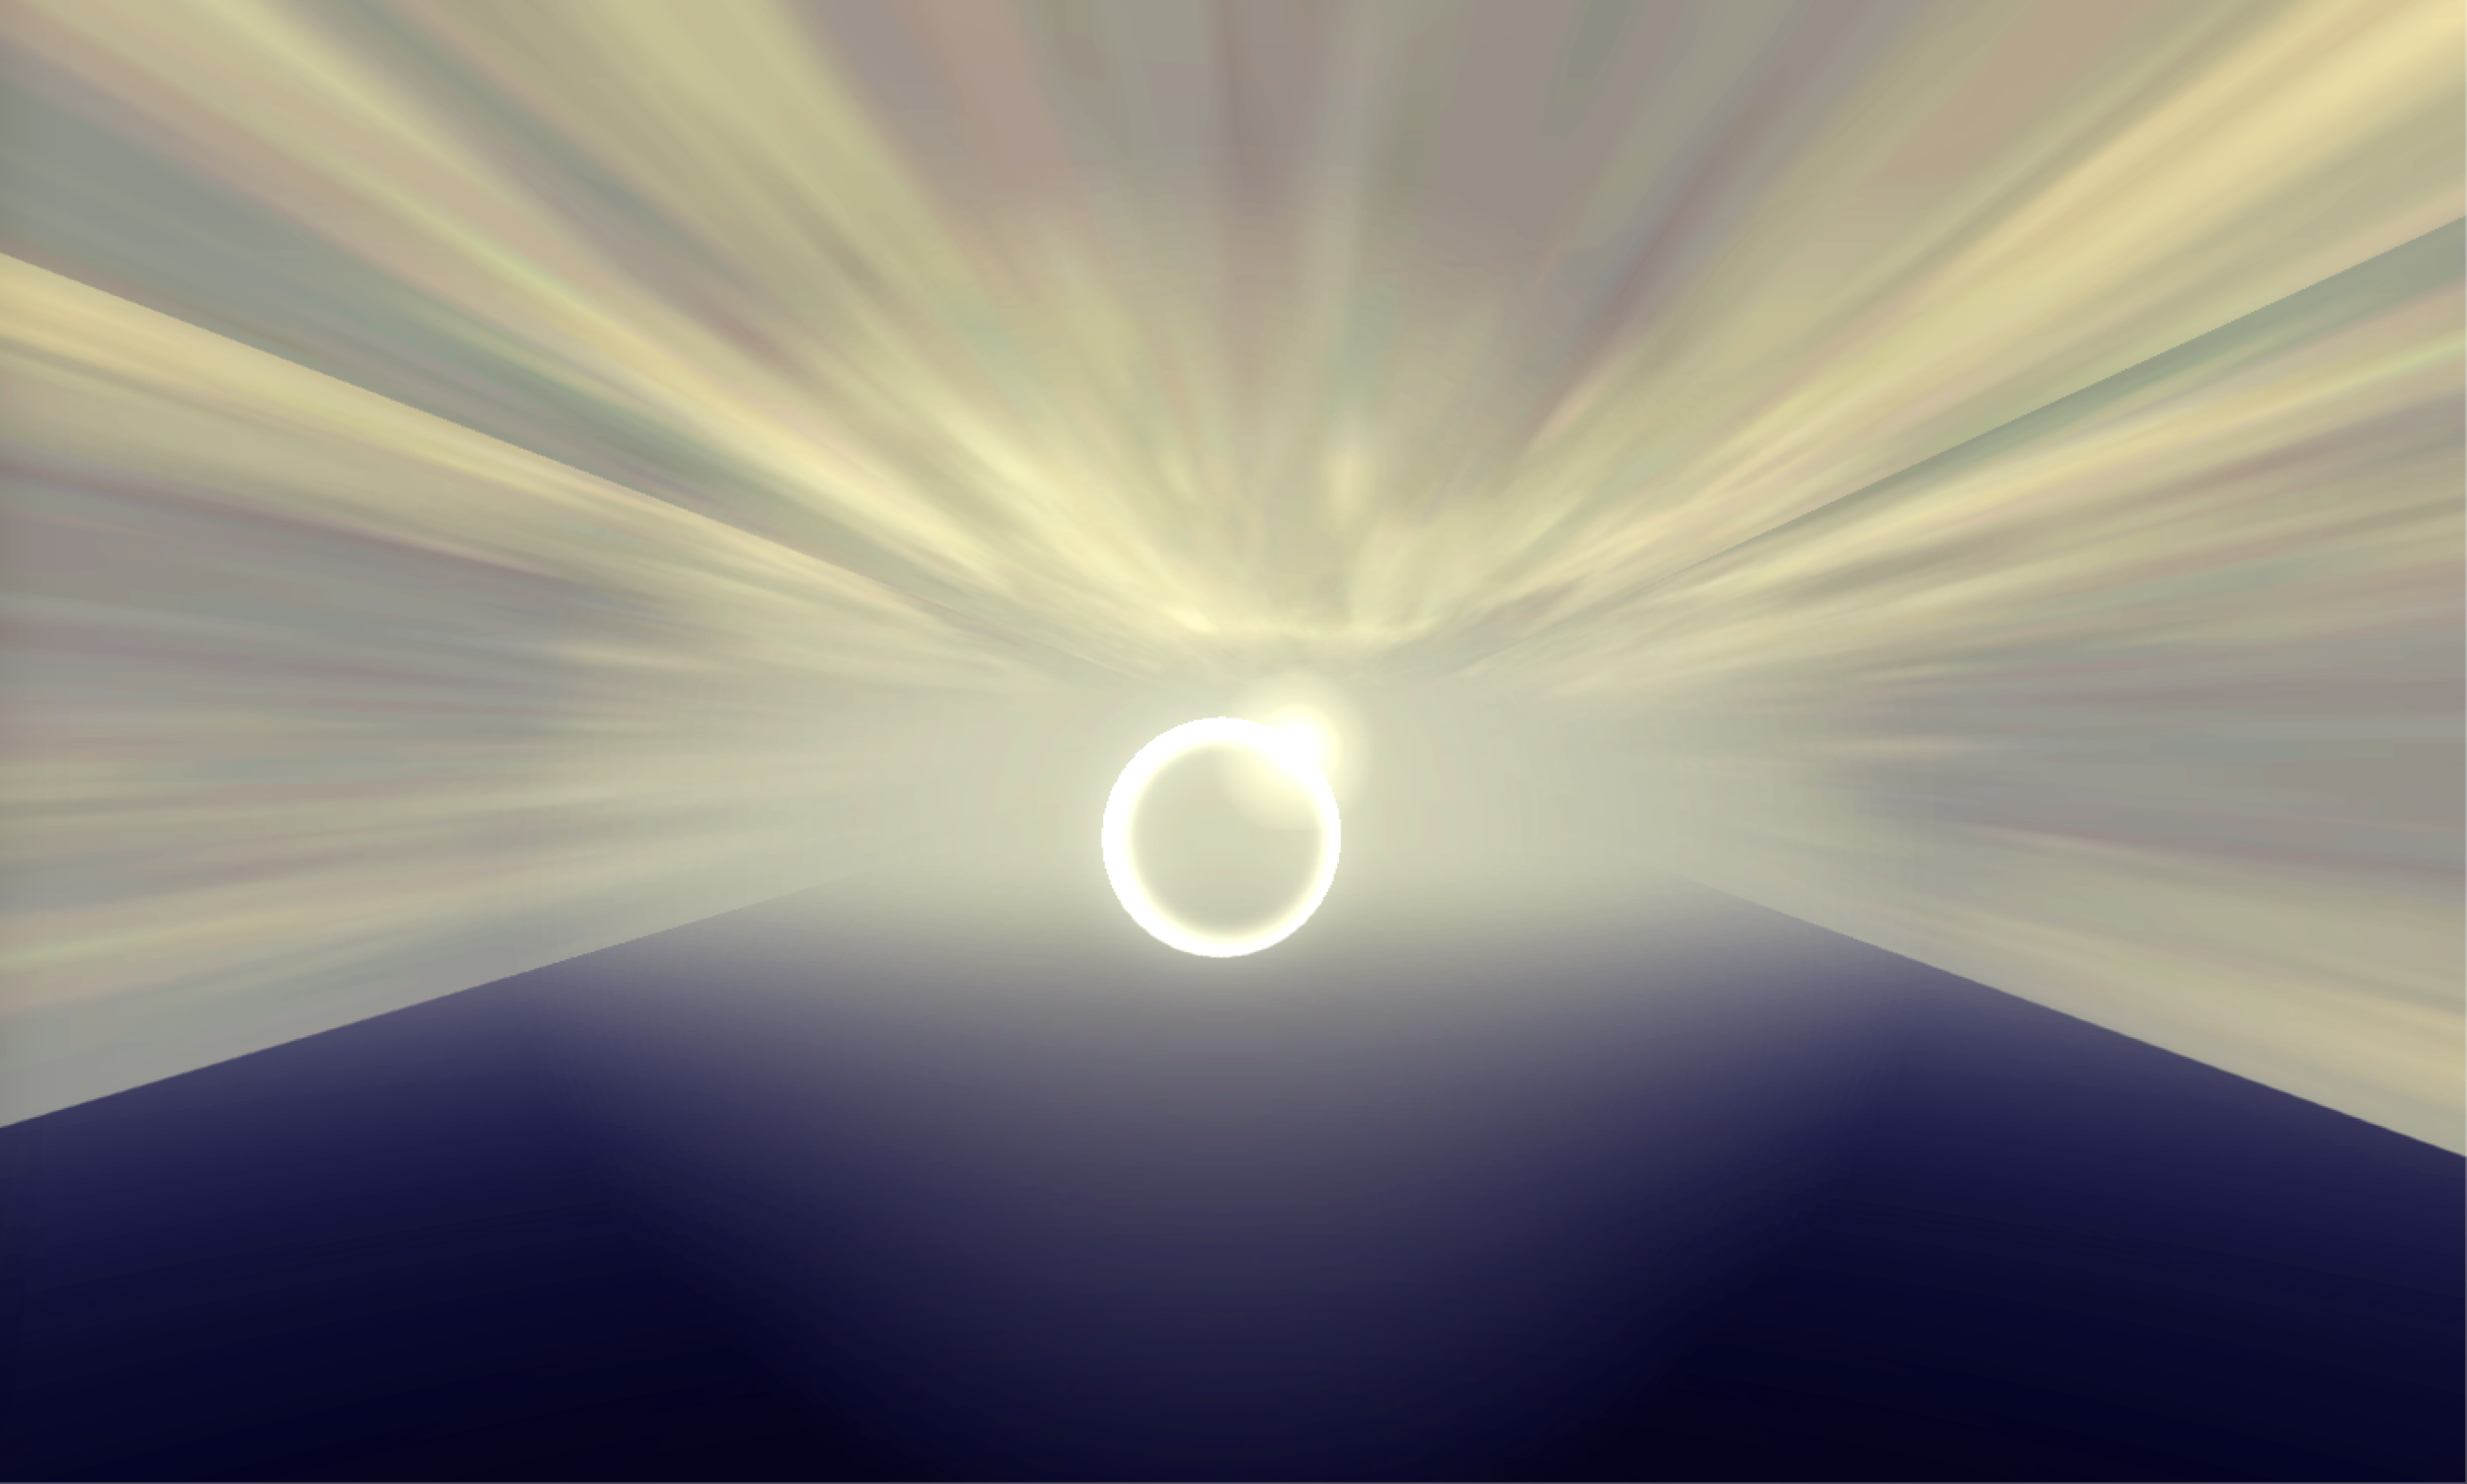 Passing through a halo triggers a personal object